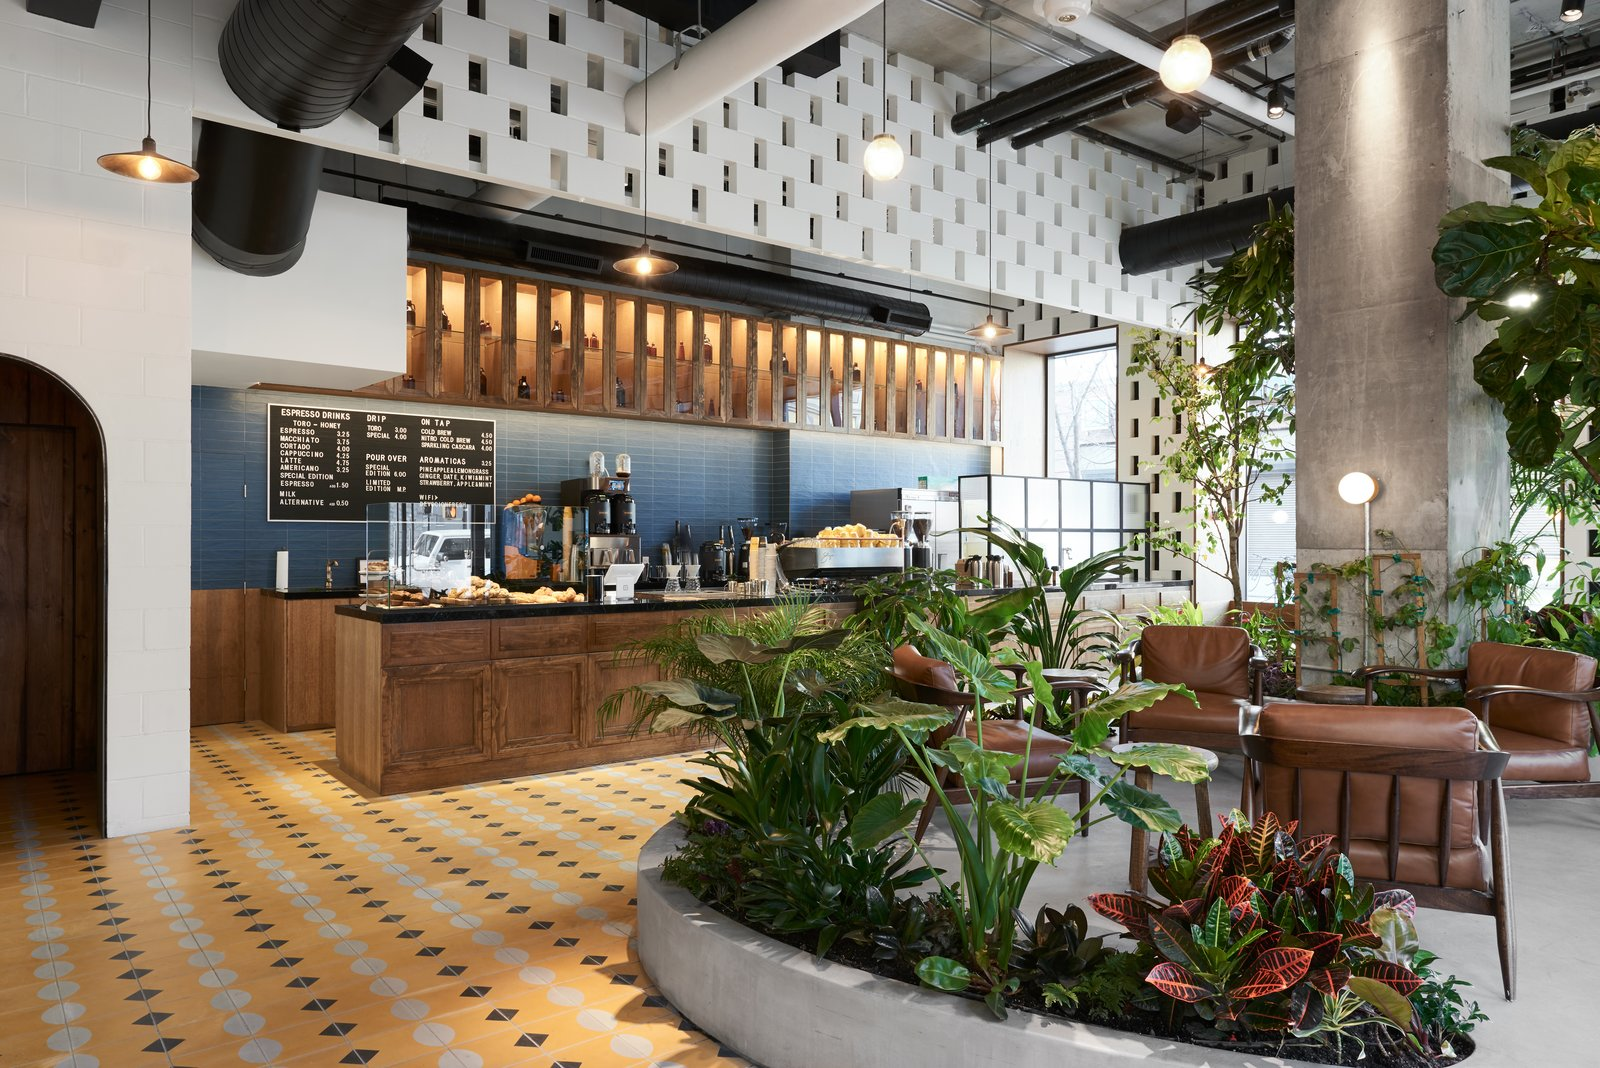 Dining Room, Chair, Cement Tile Floor, Pendant Lighting, Bar, Wall Lighting, and Concrete Floor The diverse material palette includes Colombian wood, concrete blocks, tiles, and stone.  Photo 3 of 10 in This New Brooklyn Cafe Is Brewing Up More Than Tasty Artisanal Coffee